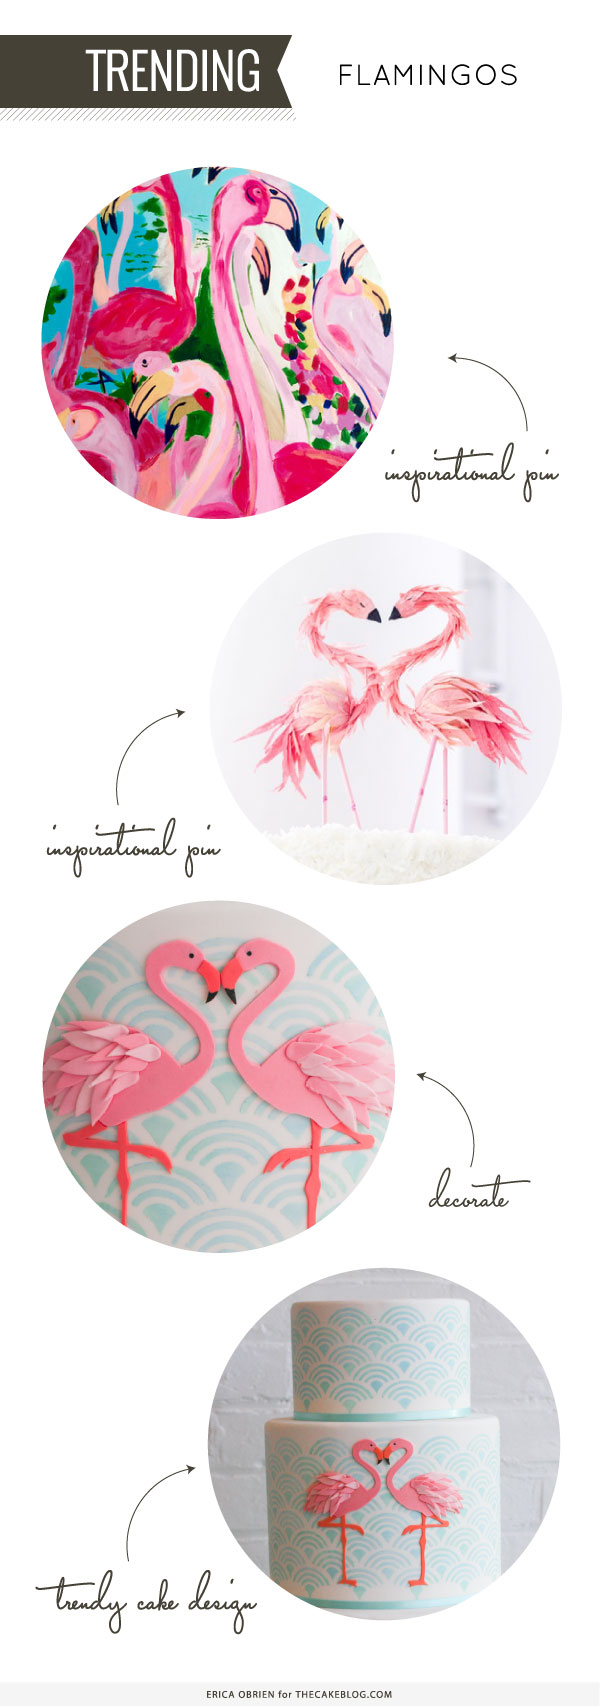 Flamingo Cake | by Erica OBrien for TheCakeBlog.com